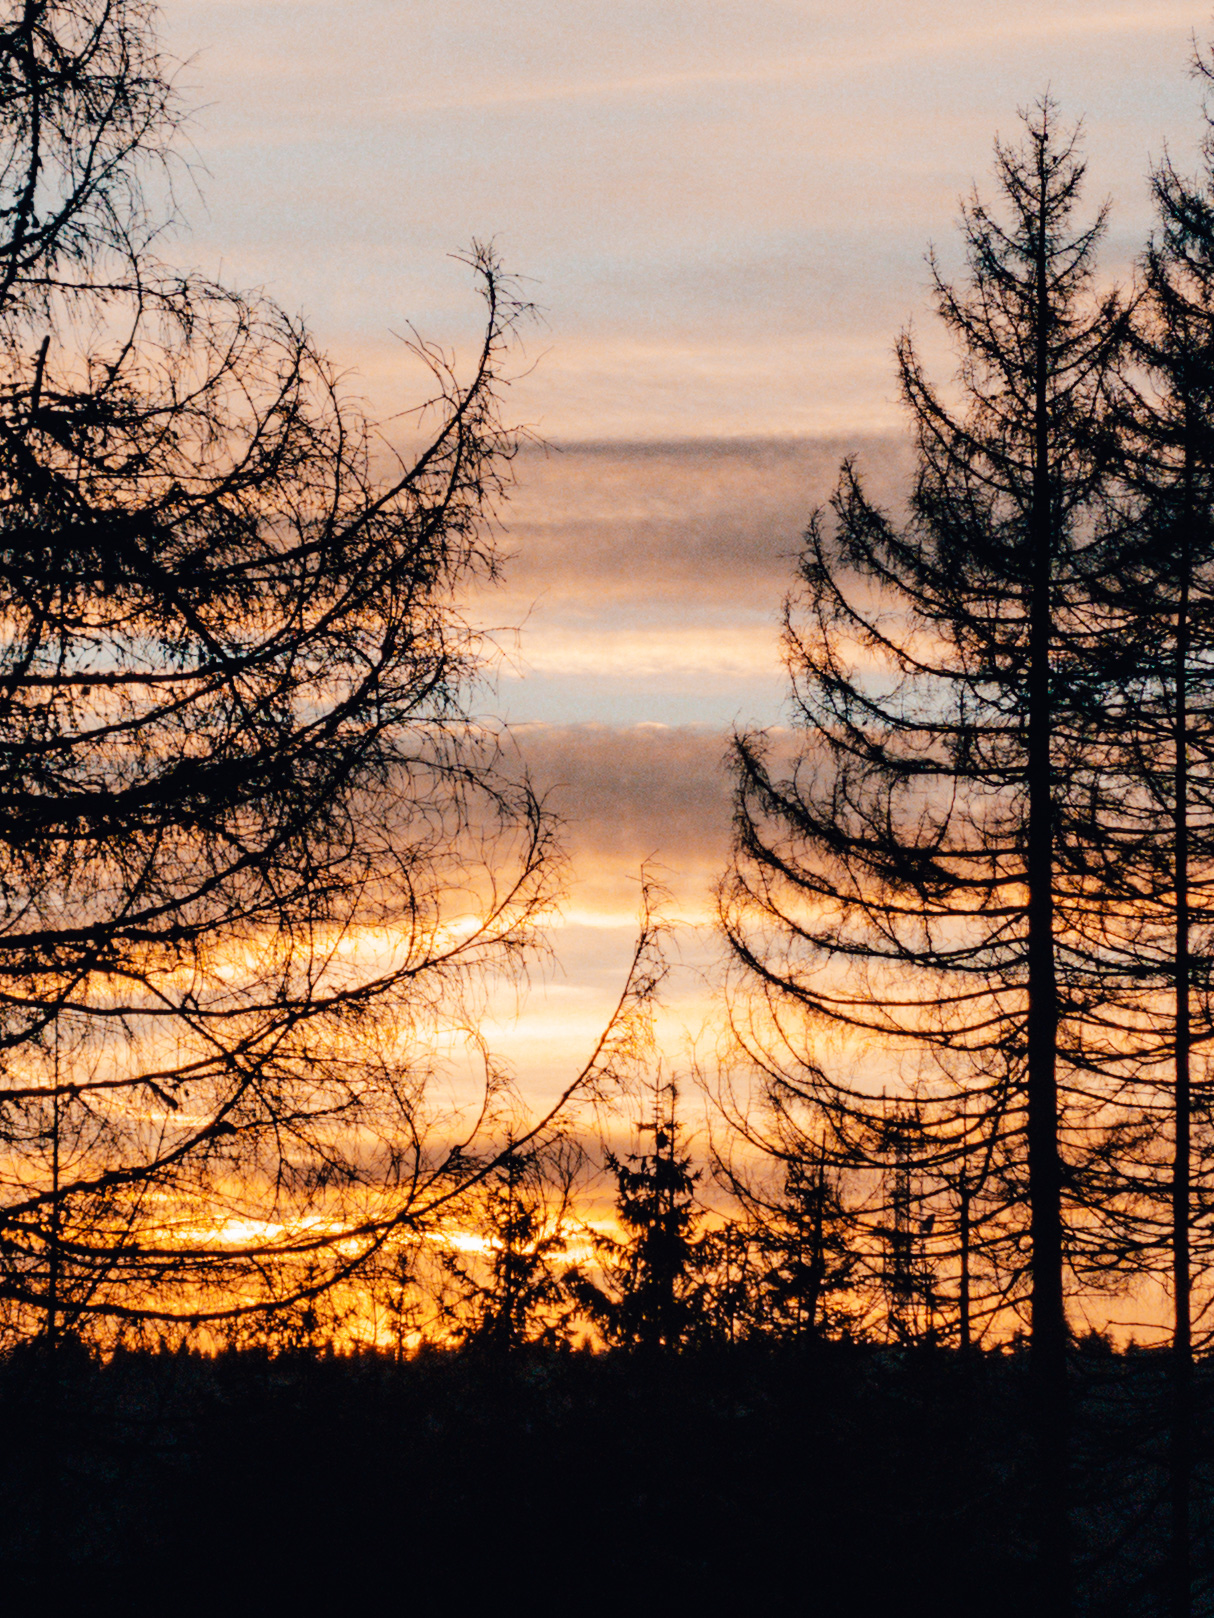 Sunset behind the trees in the Harz Mountains